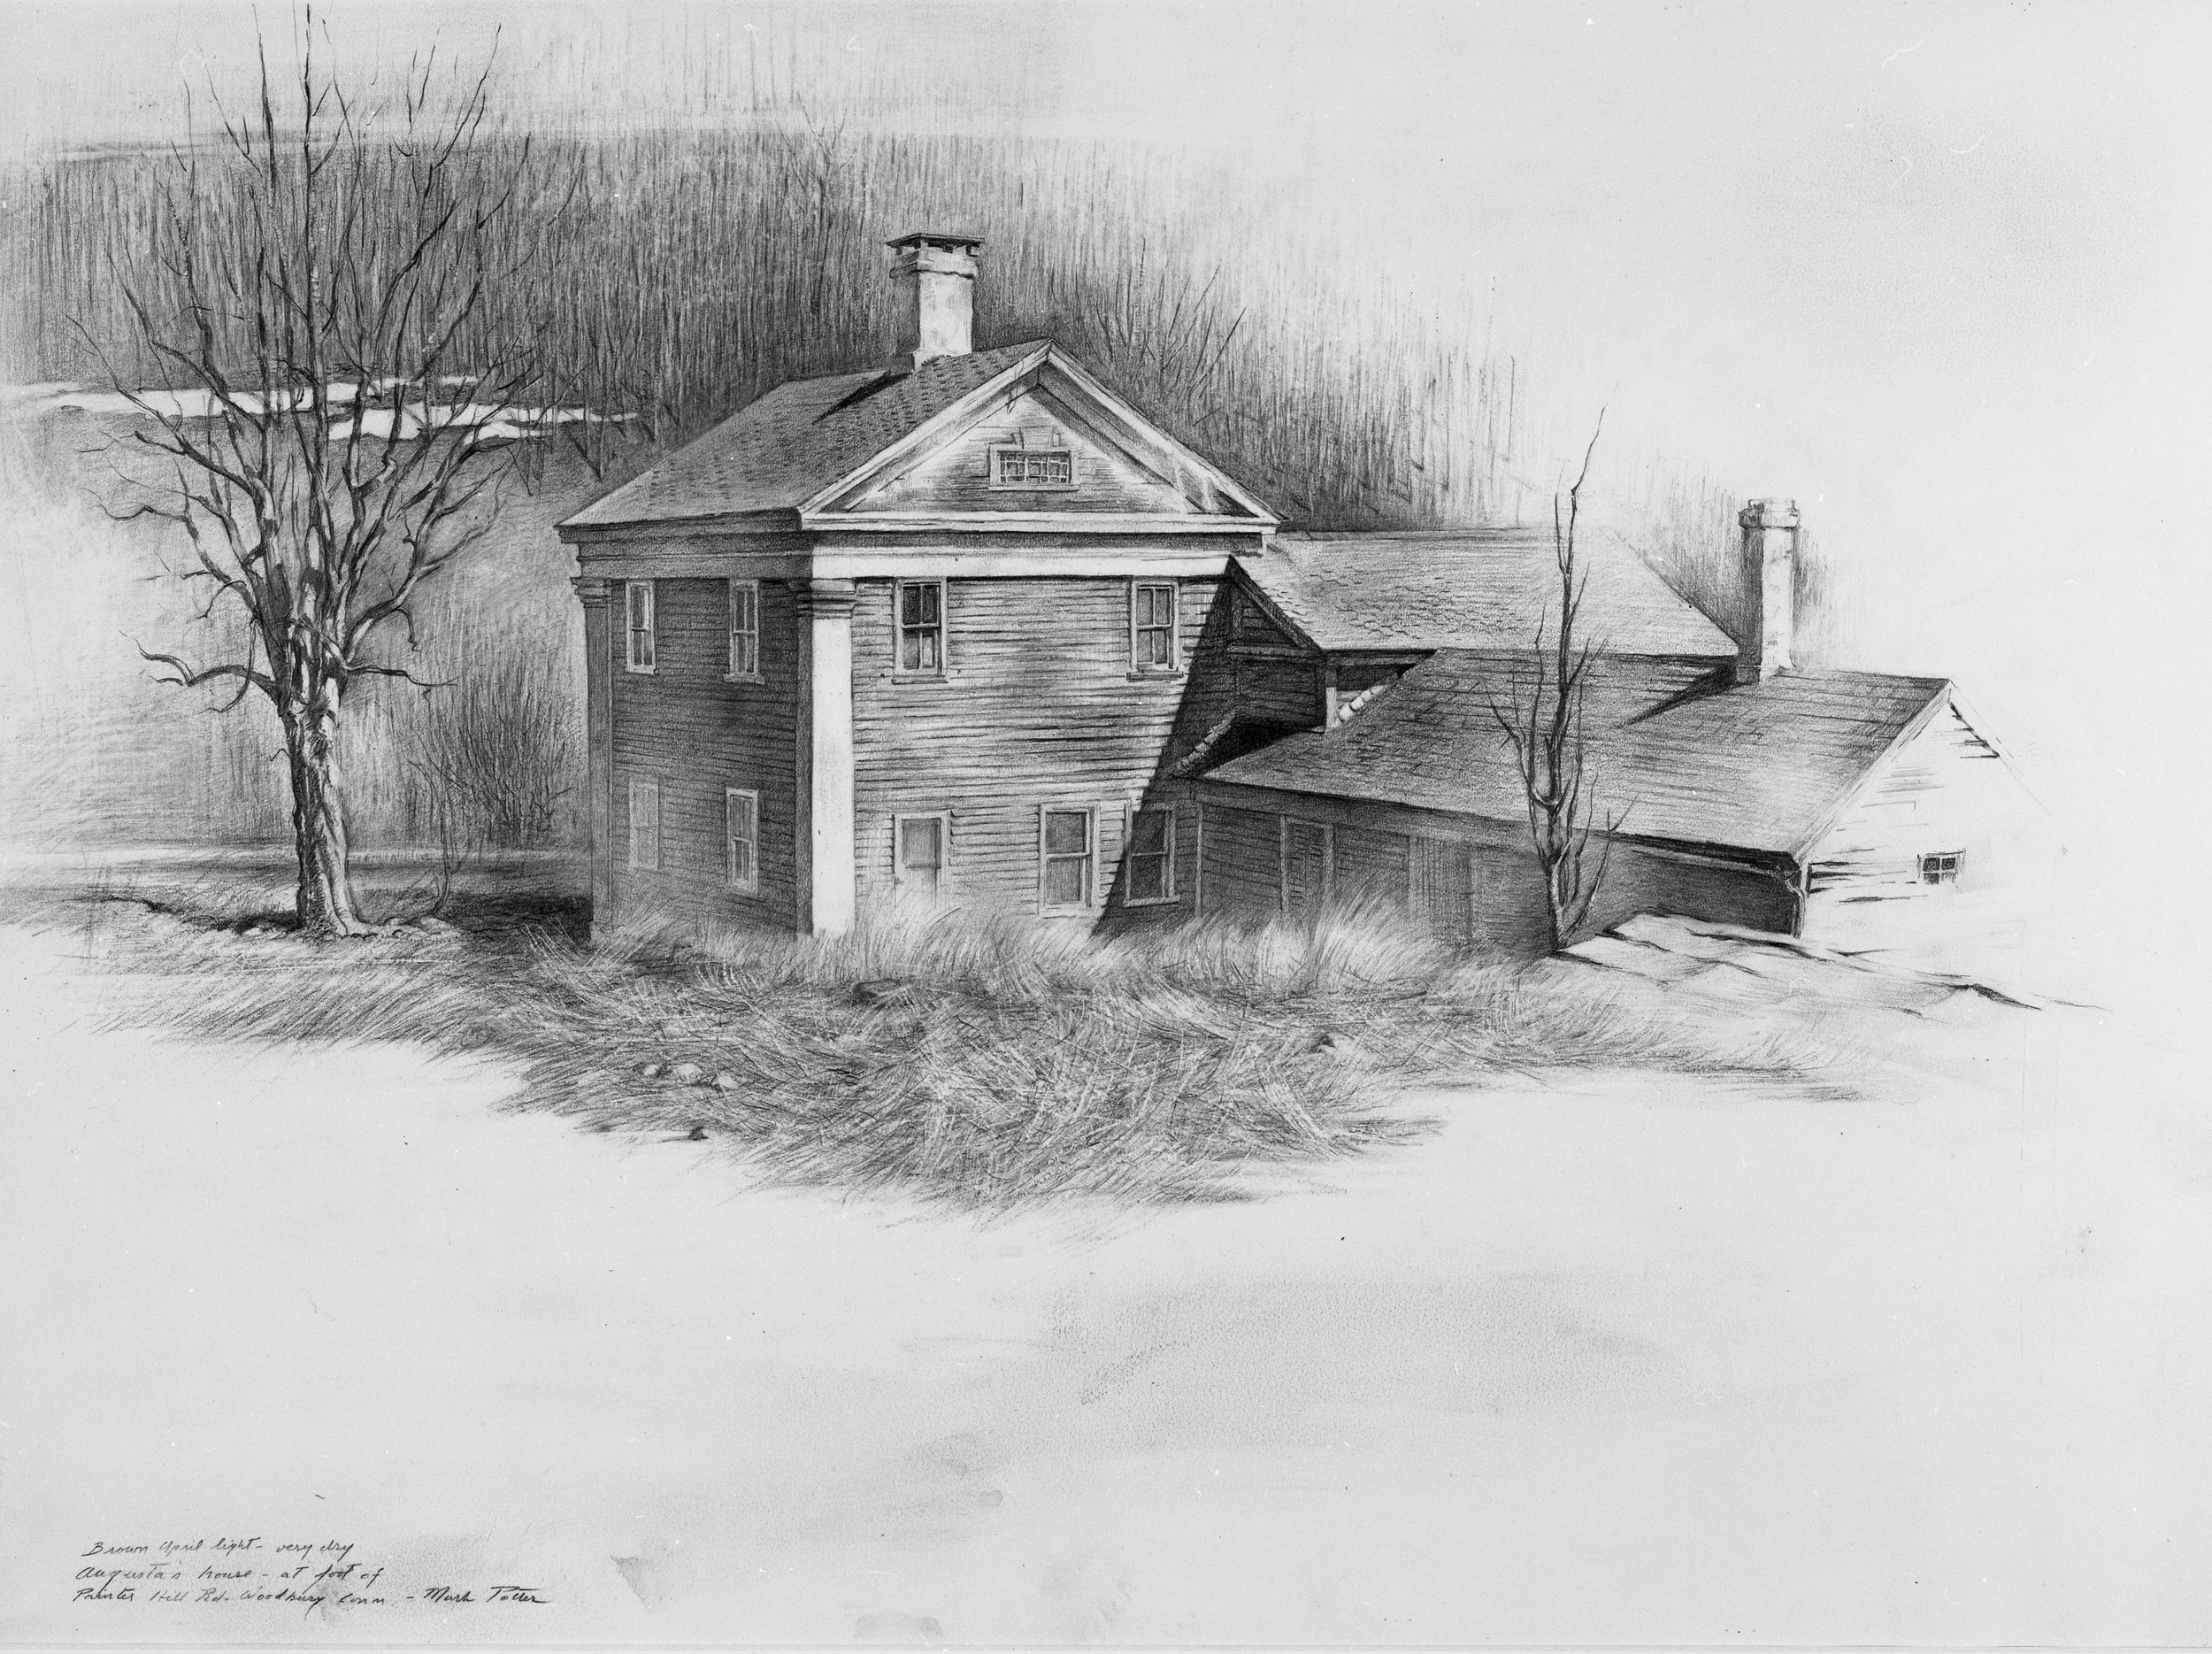 Augusta's House.   1966, pencil on paper. 15.5 x 21.3 inches. Private Collection.